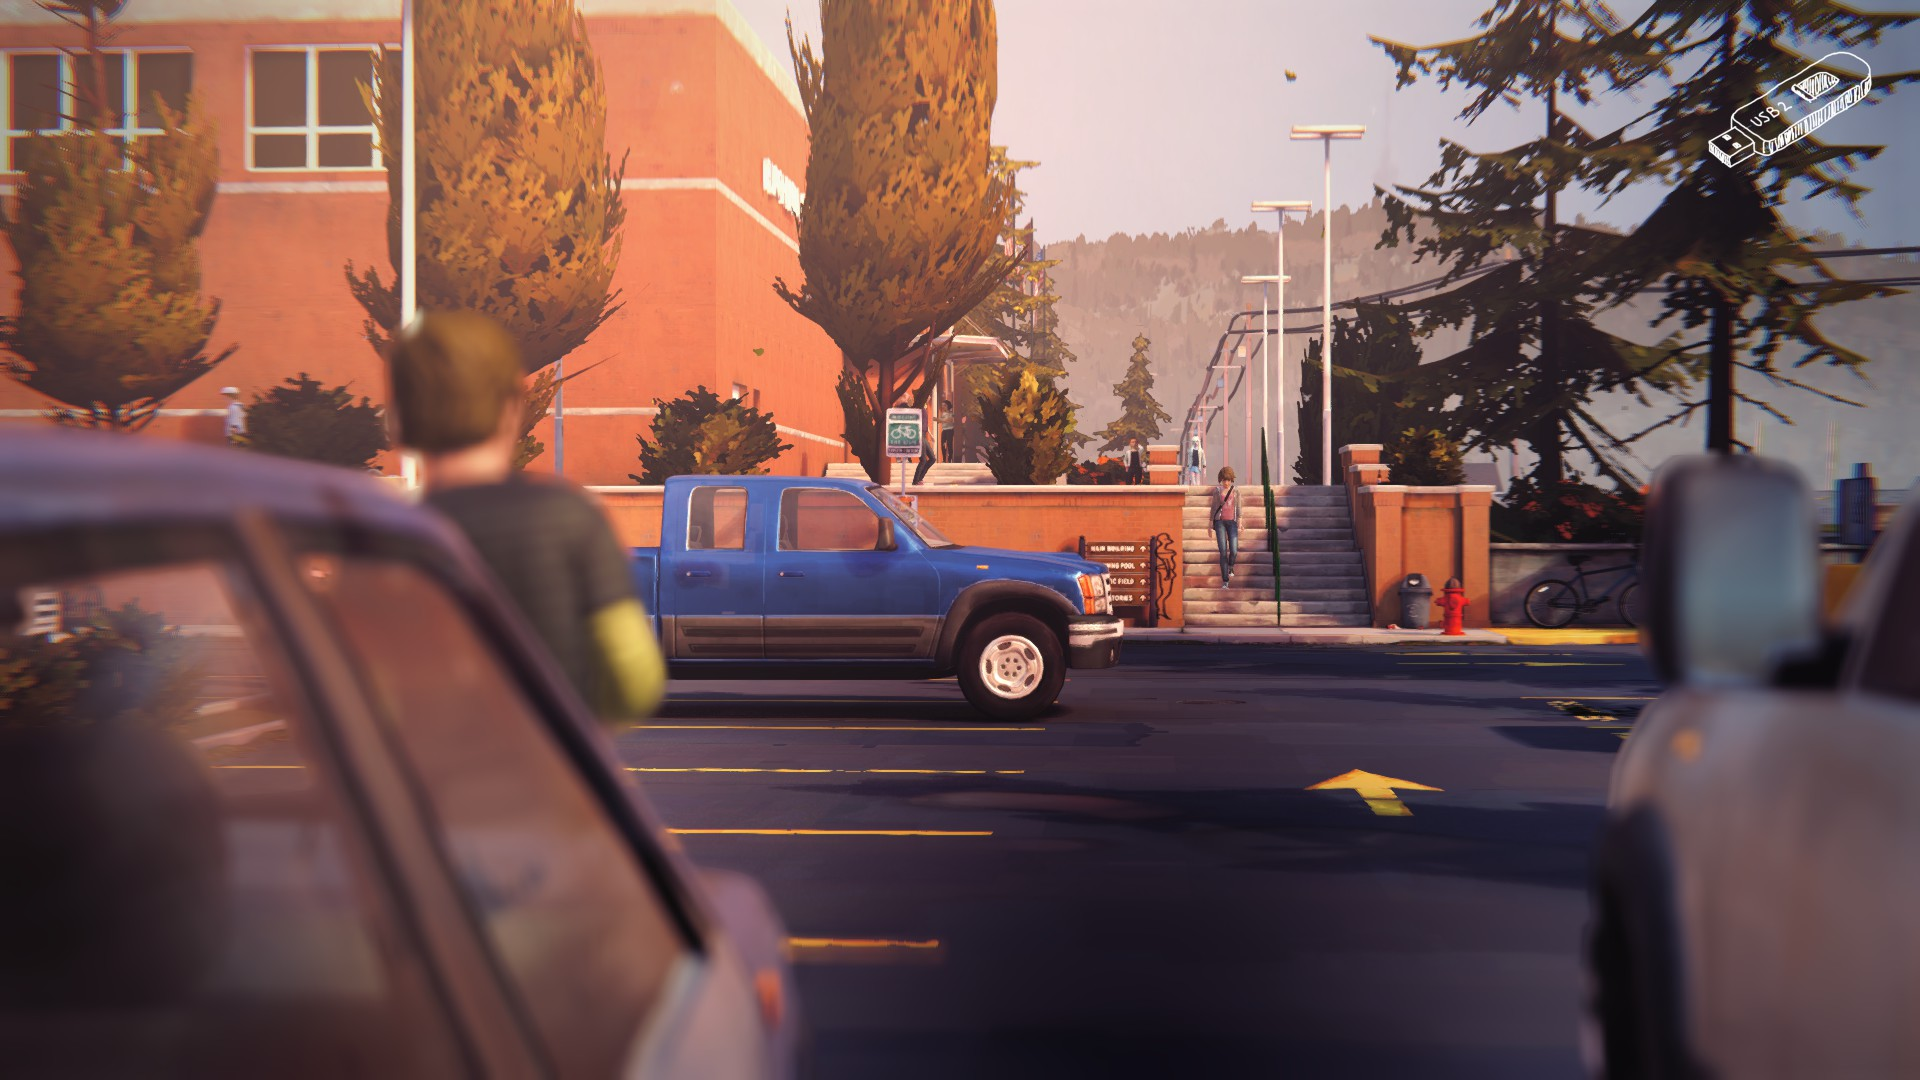 Blackwell Academy Parking Lot Dontnod Entertainment Wiki Fandom